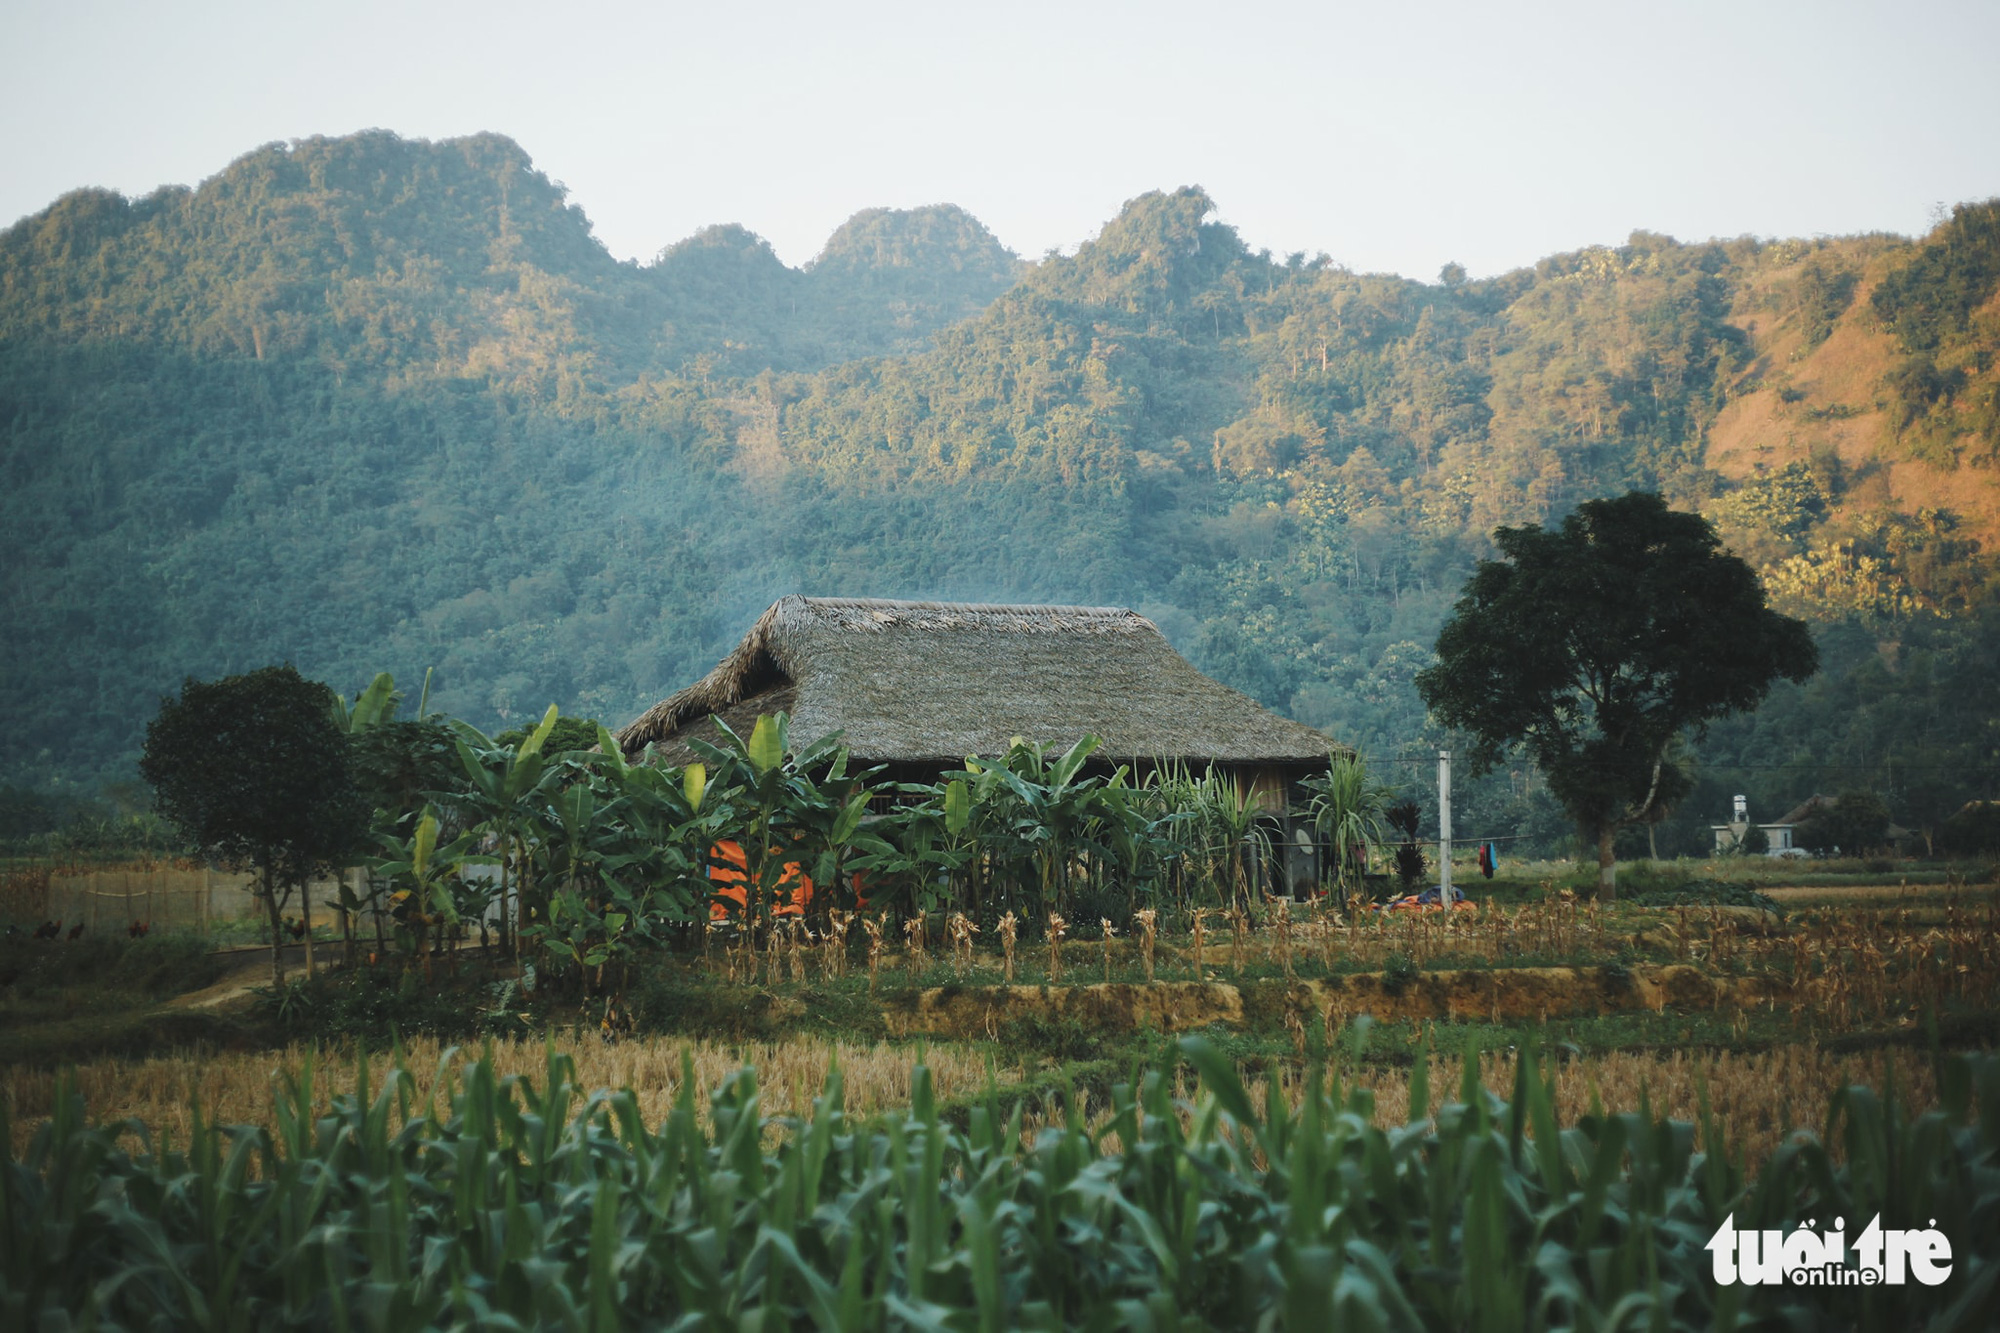 Experience a day as a Tay ethnic minority member in Vietnam